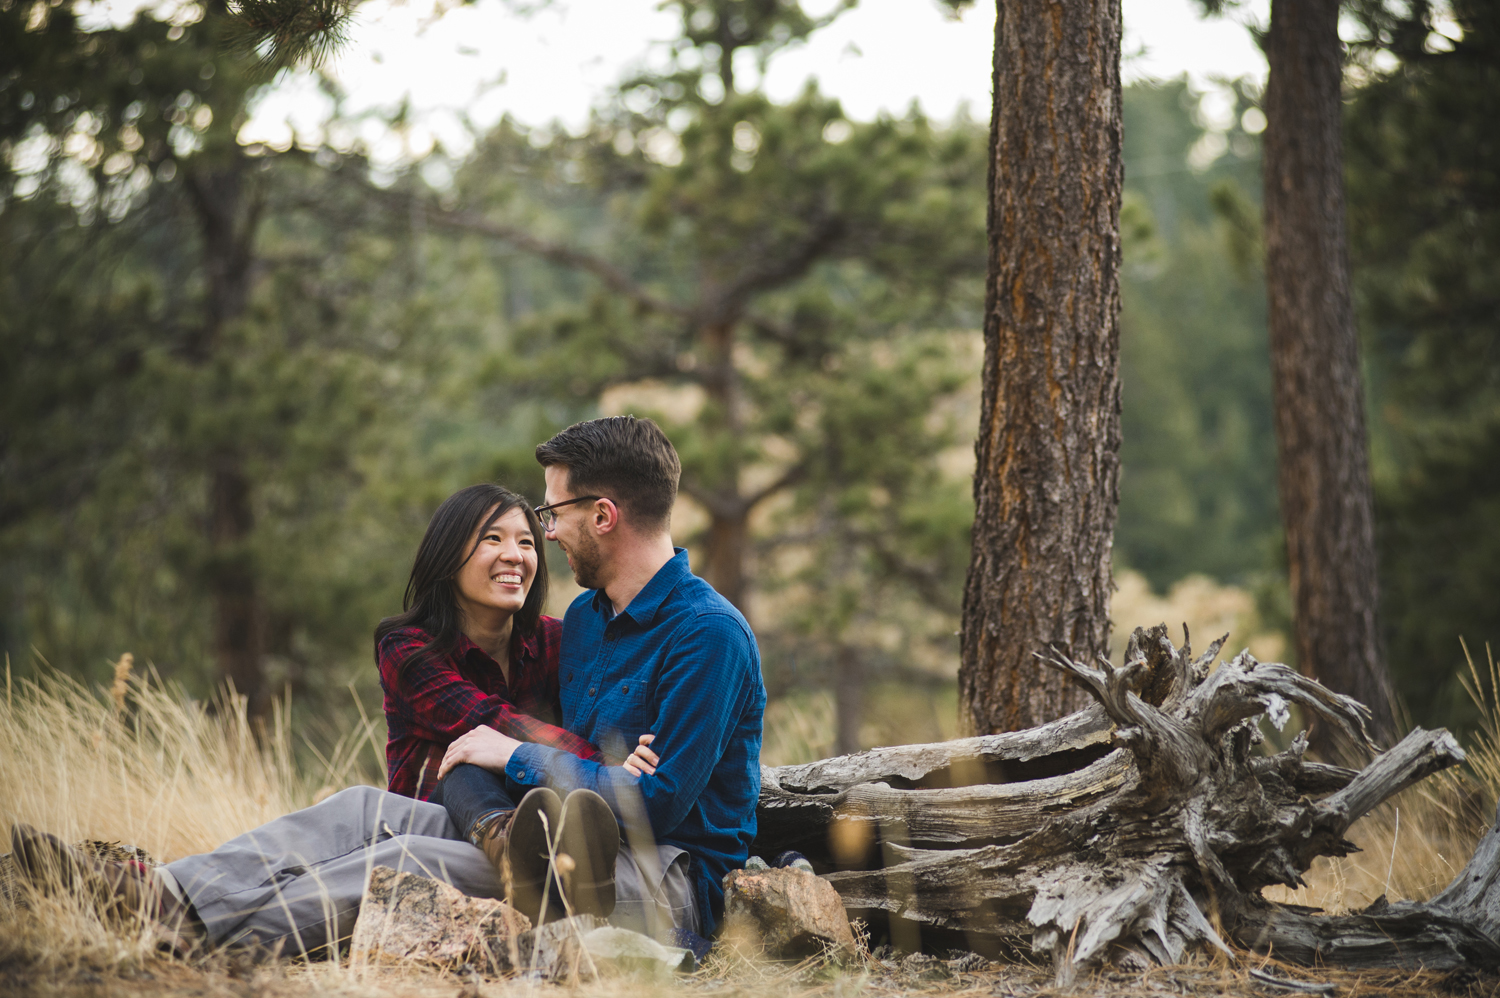 TiffanyandMark_Engaged_0854_squarespace.jpg